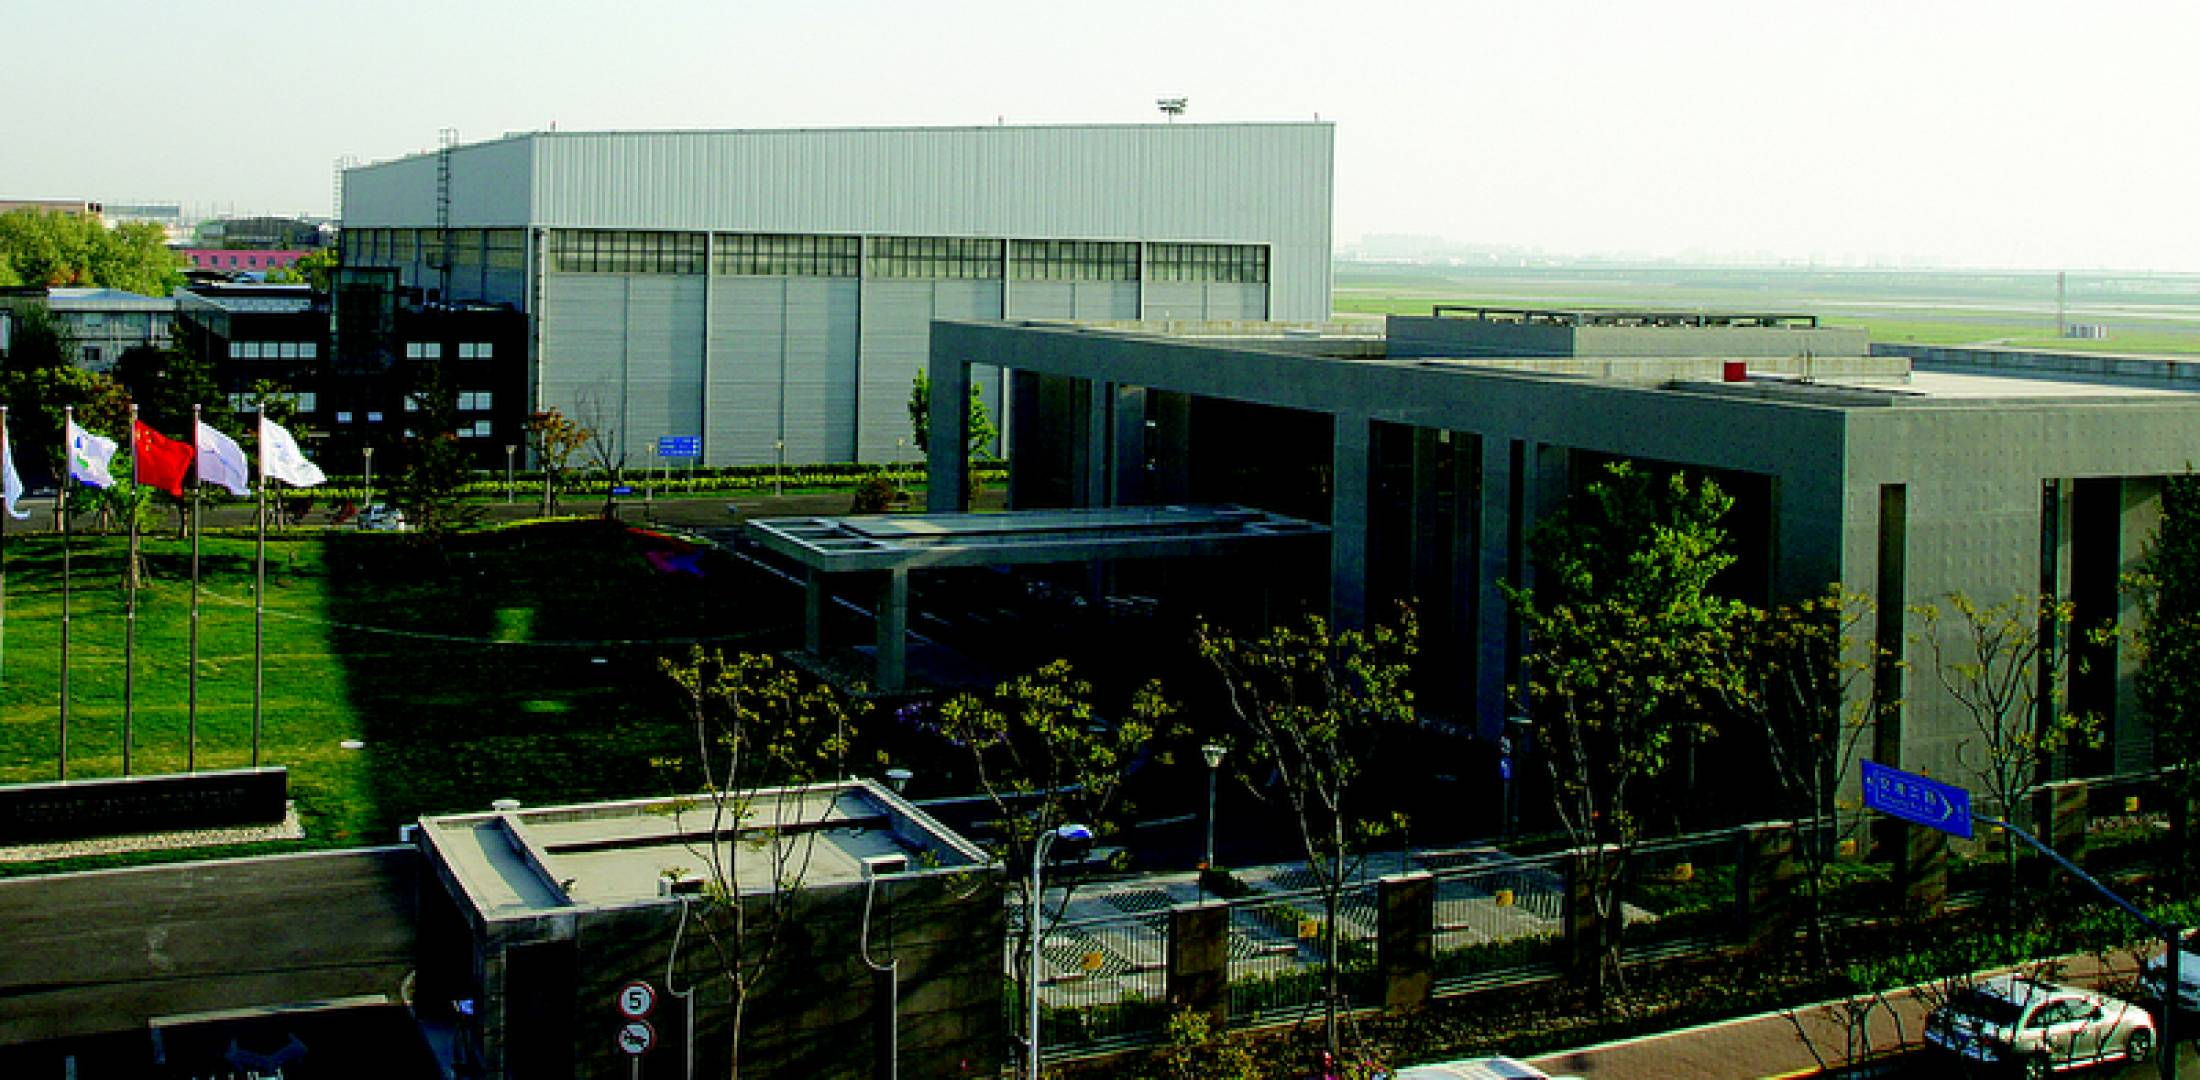 Shanghai Hawker Pacific Business Aviation Service Center